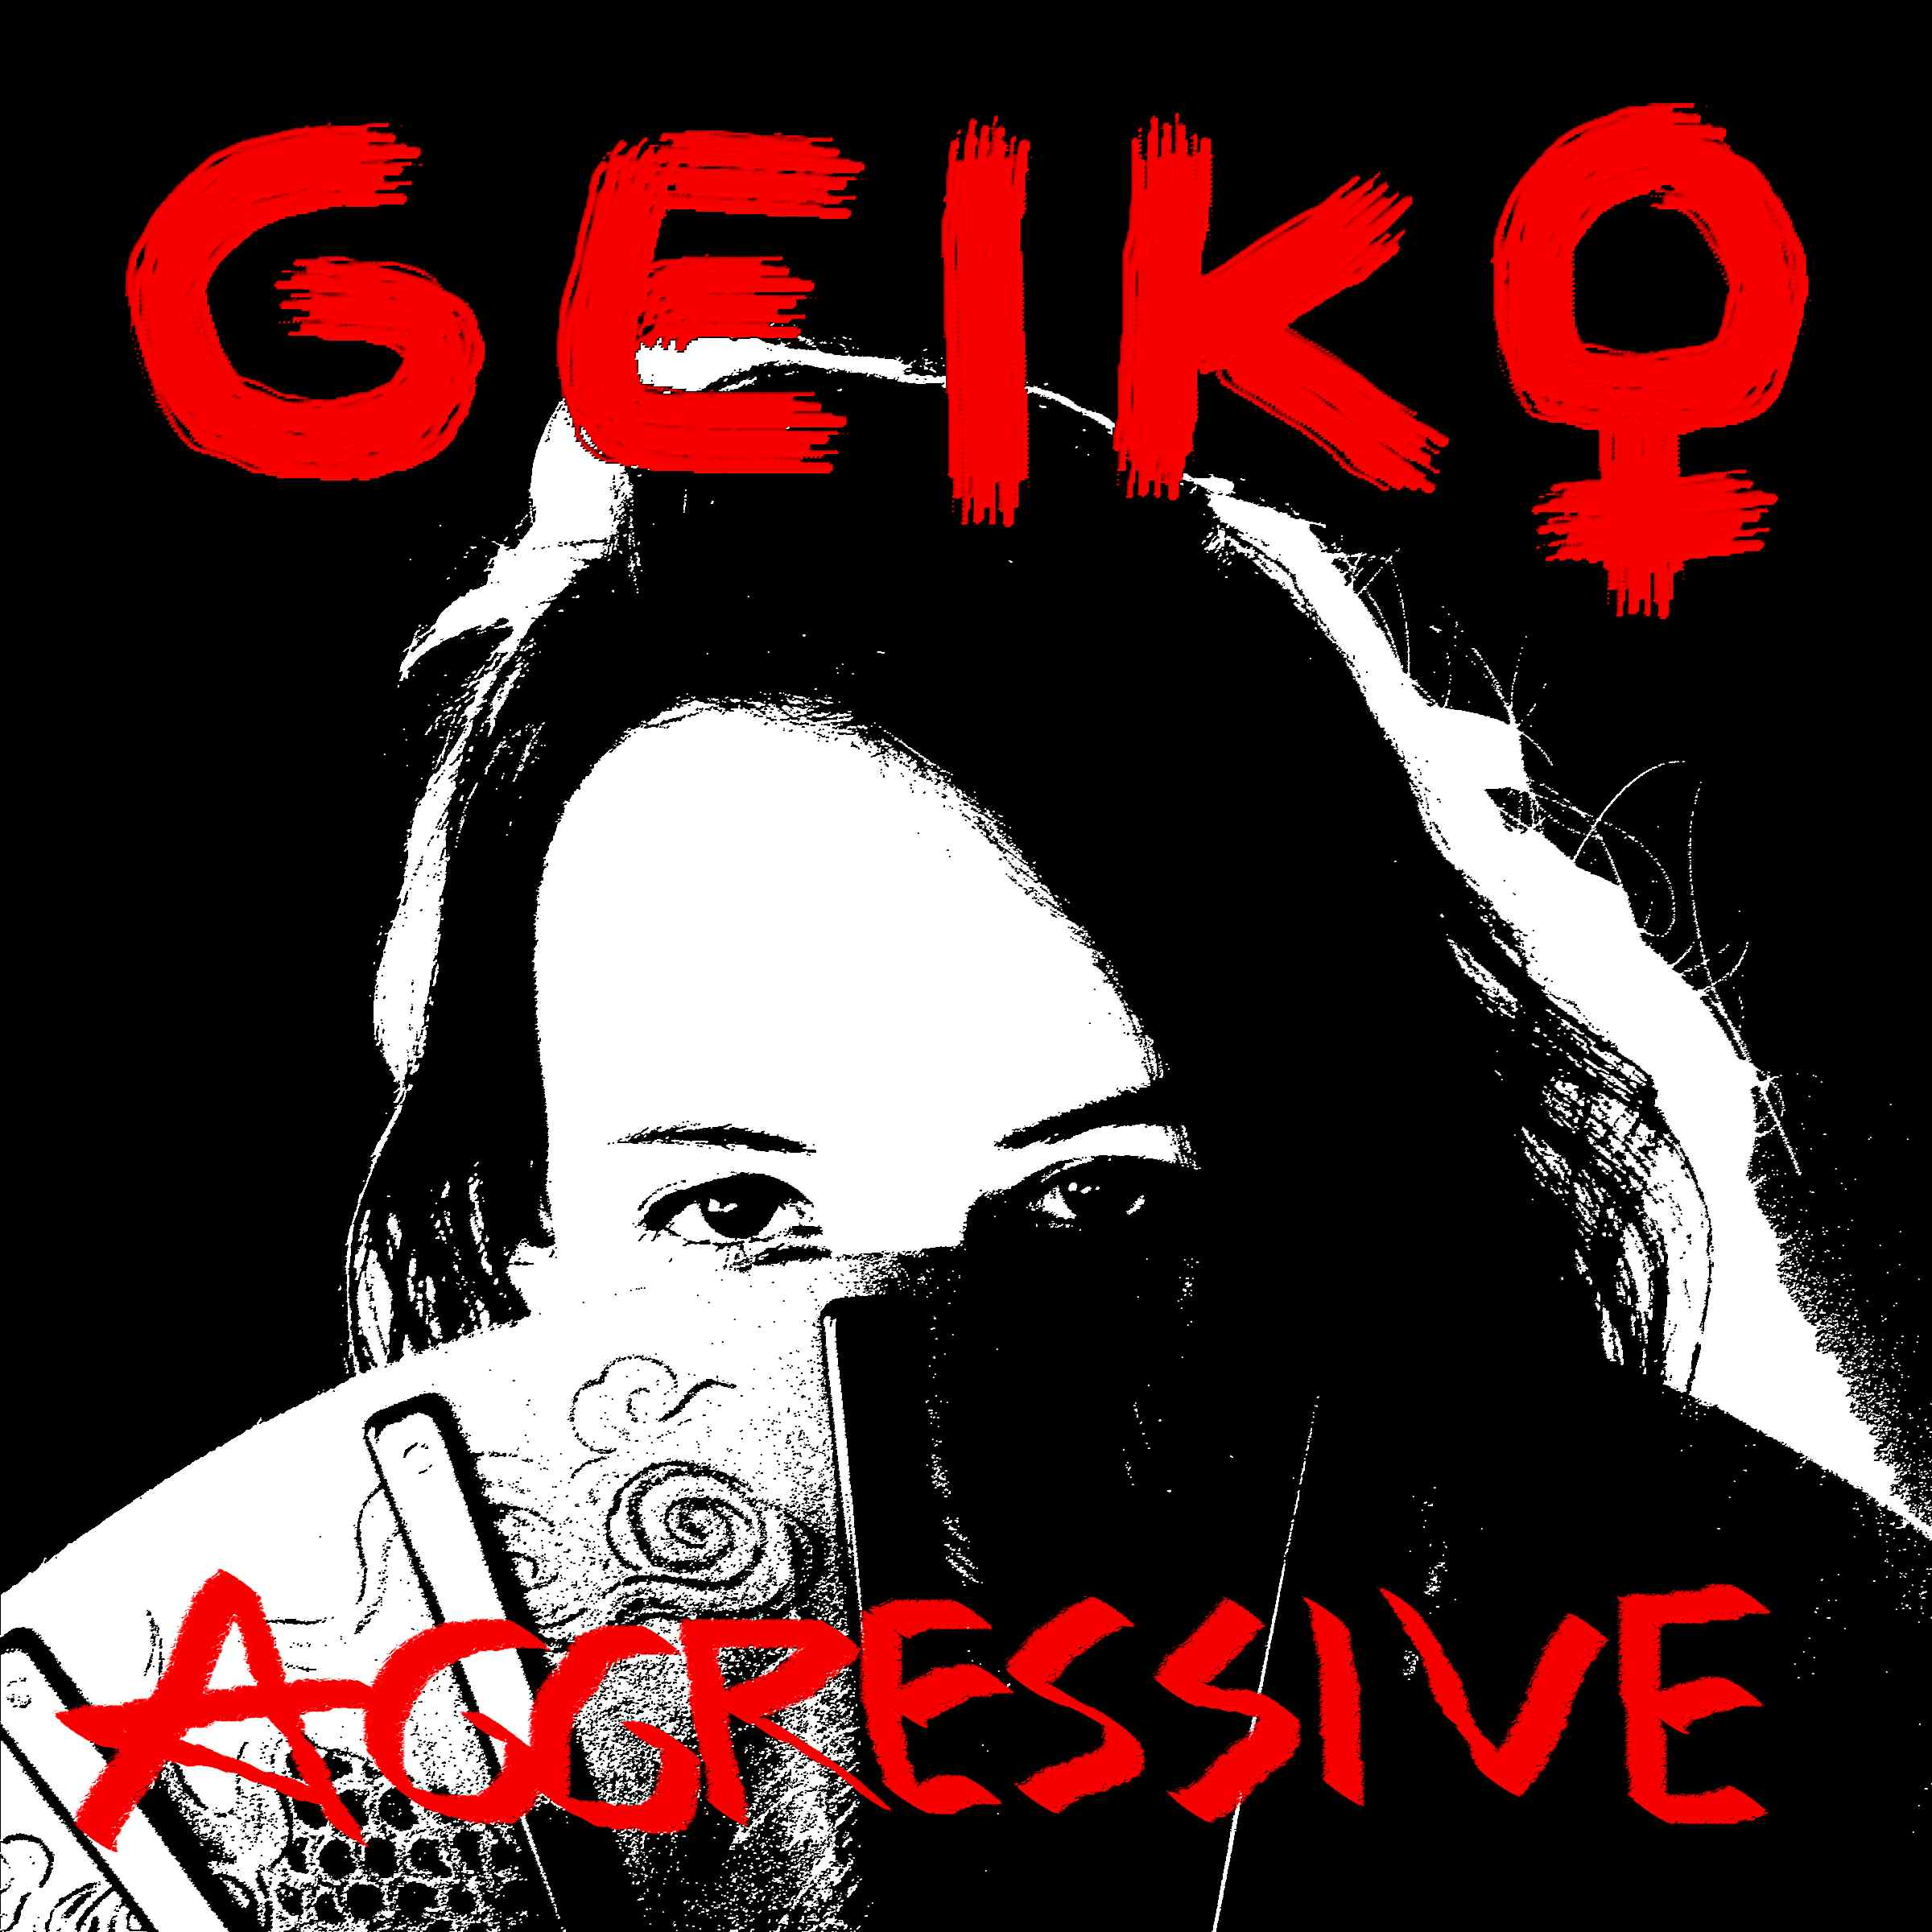 Geiko's Aggressive Album Review